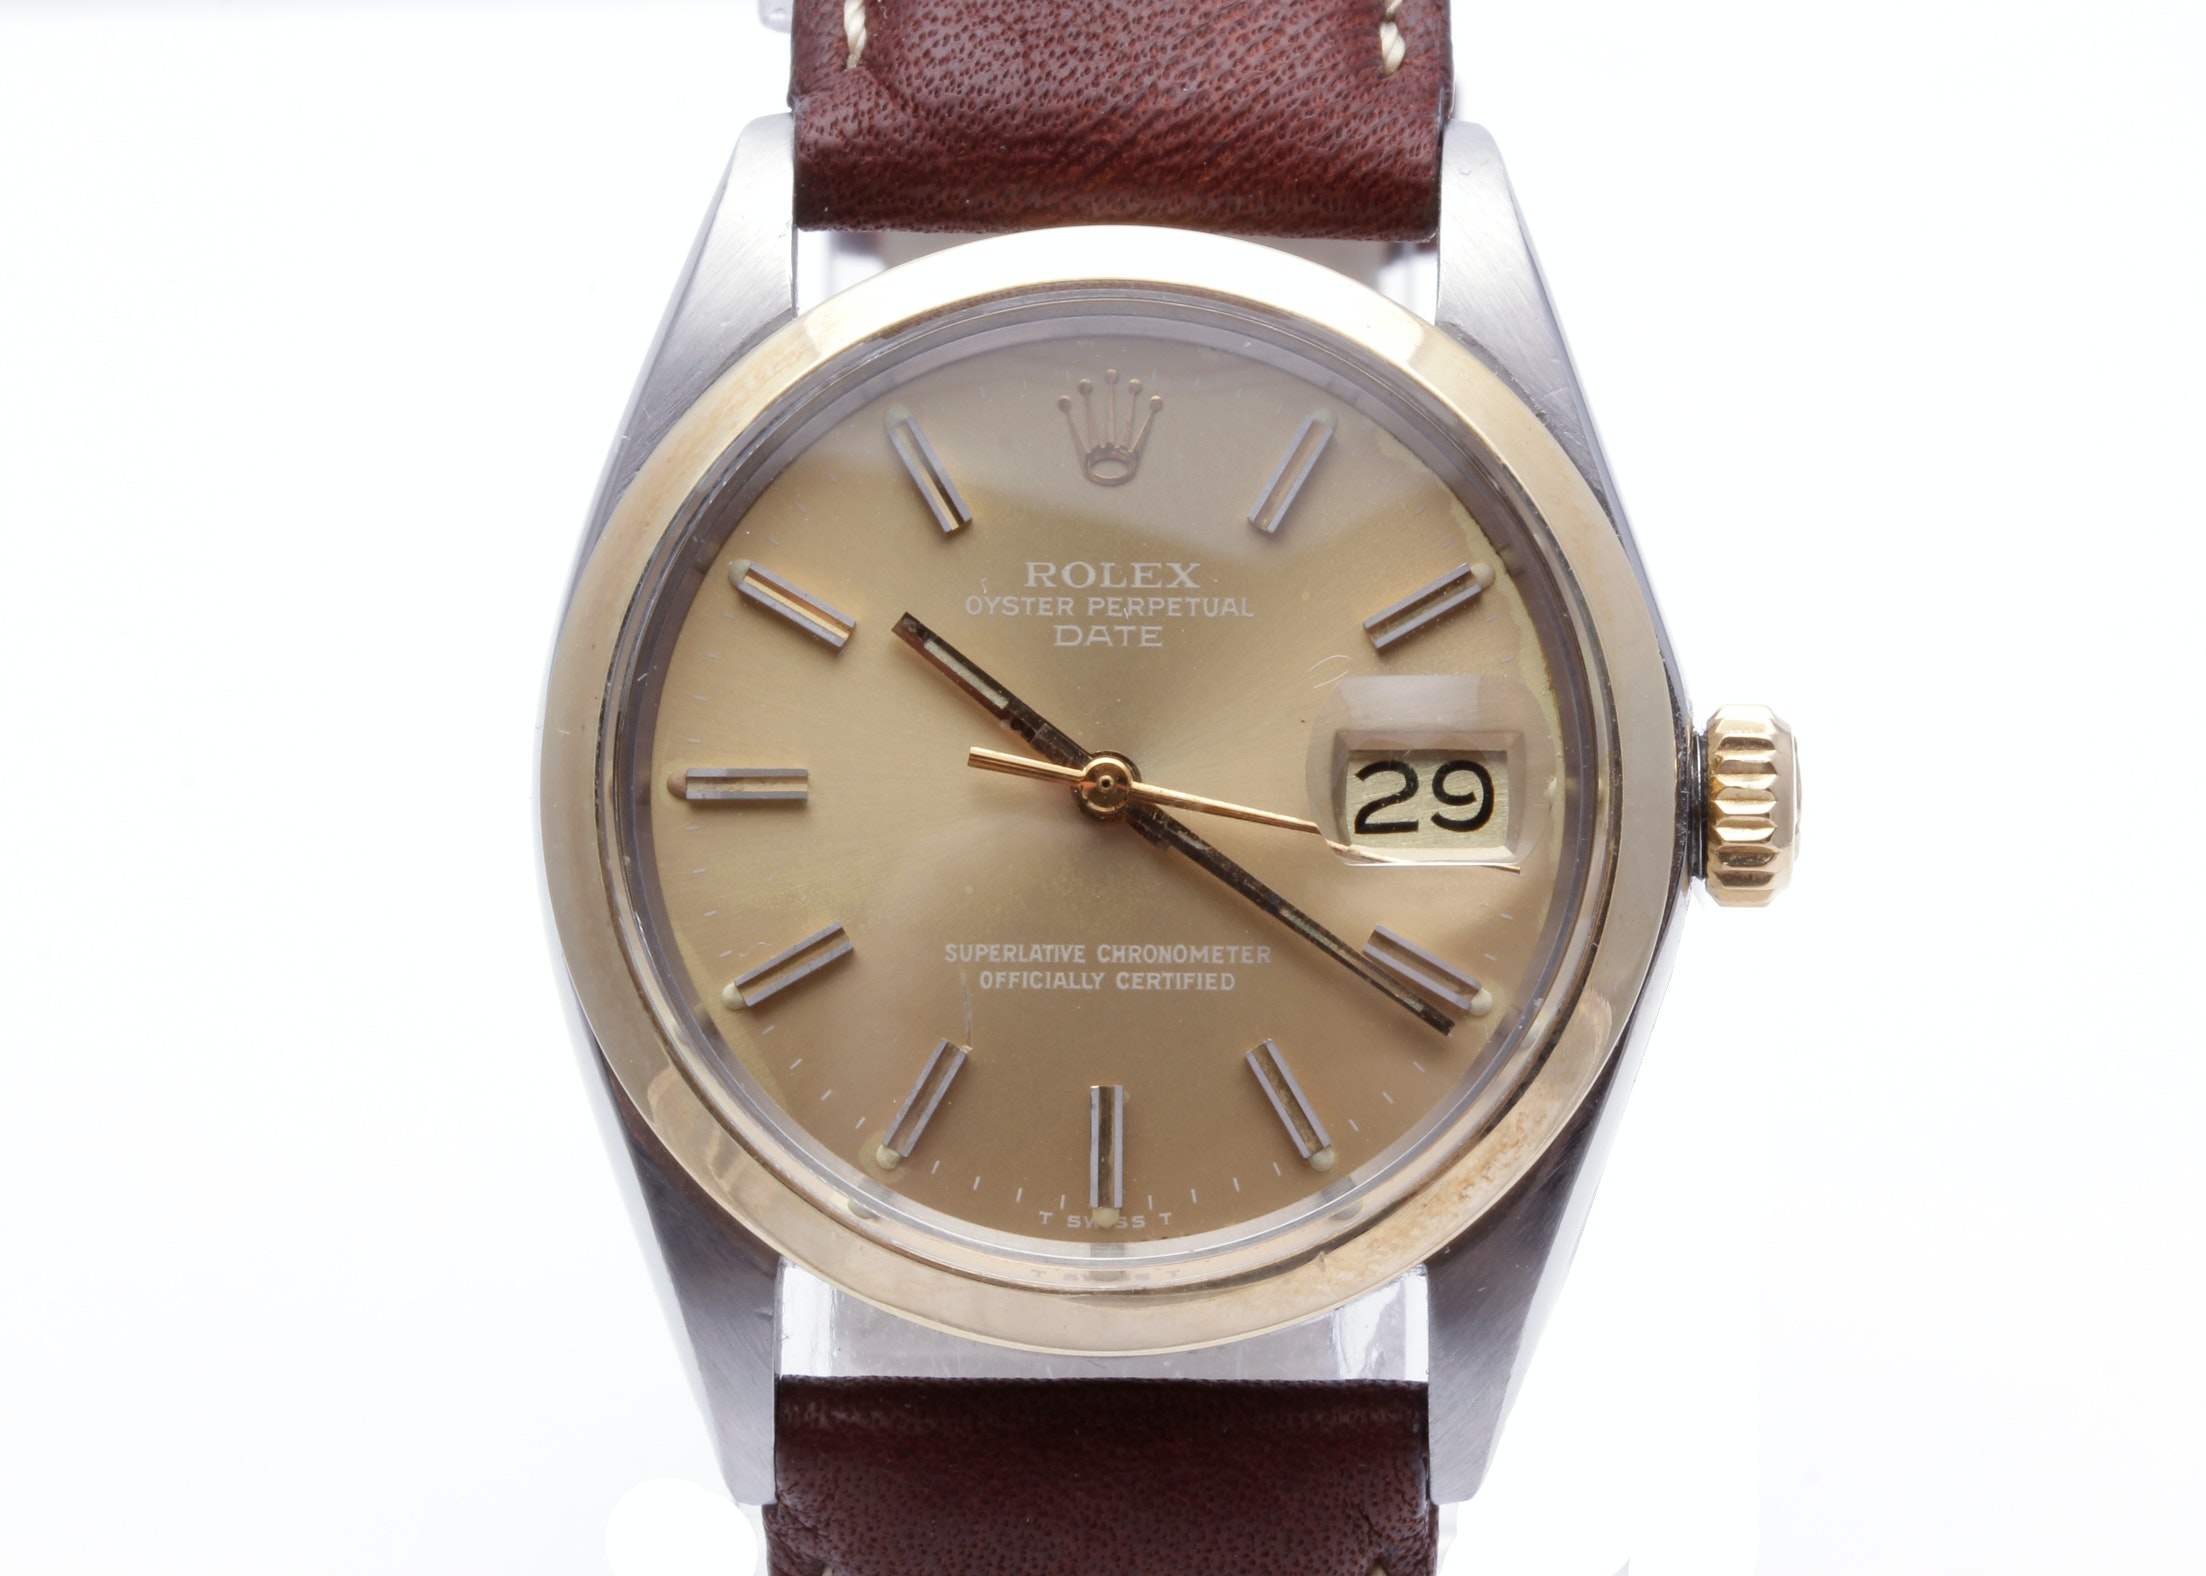 Rolex 14K Yellow Gold and Stainless Steel Date 34mm Oyster Perpetual Wristwatch